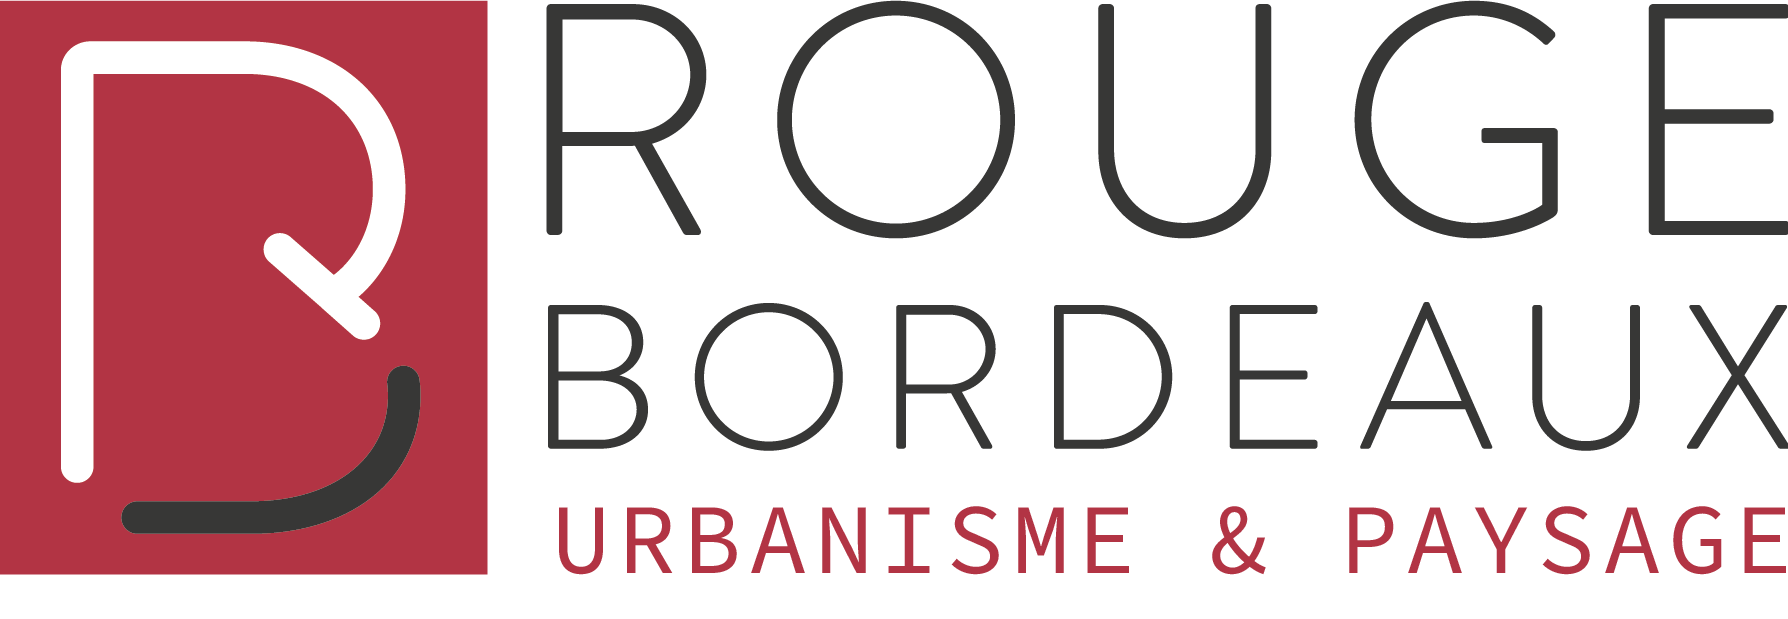 Atelier Rouge Bordeaux